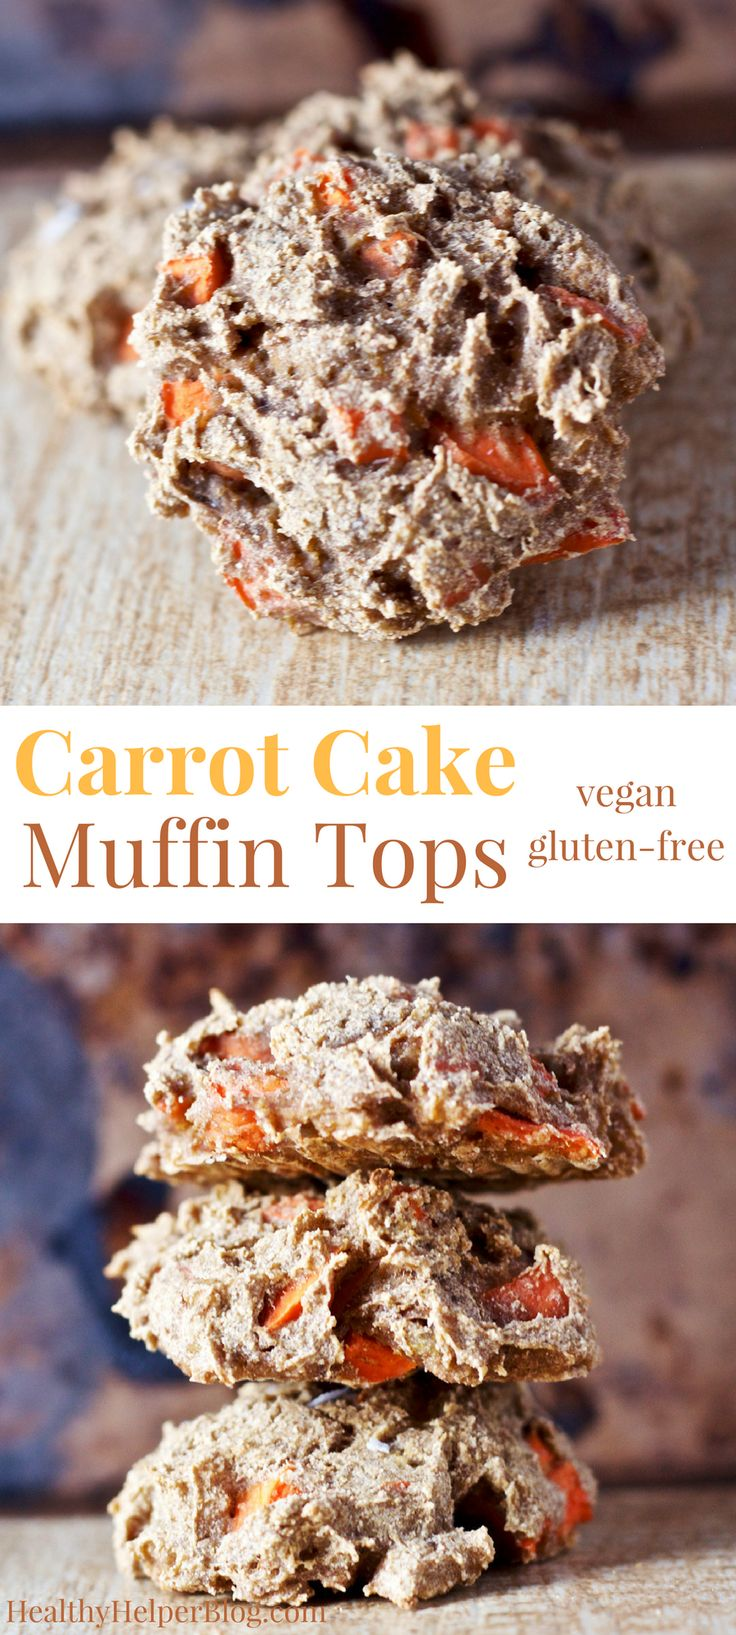 Carrot Cake Muffin Tops | Healthy Helper @Healthy_Helper Carrot cake in muffin top form! Vegan, gluten-free, and date-sweetened. These little treats are perfect for celebrating spring and are filled flavor!